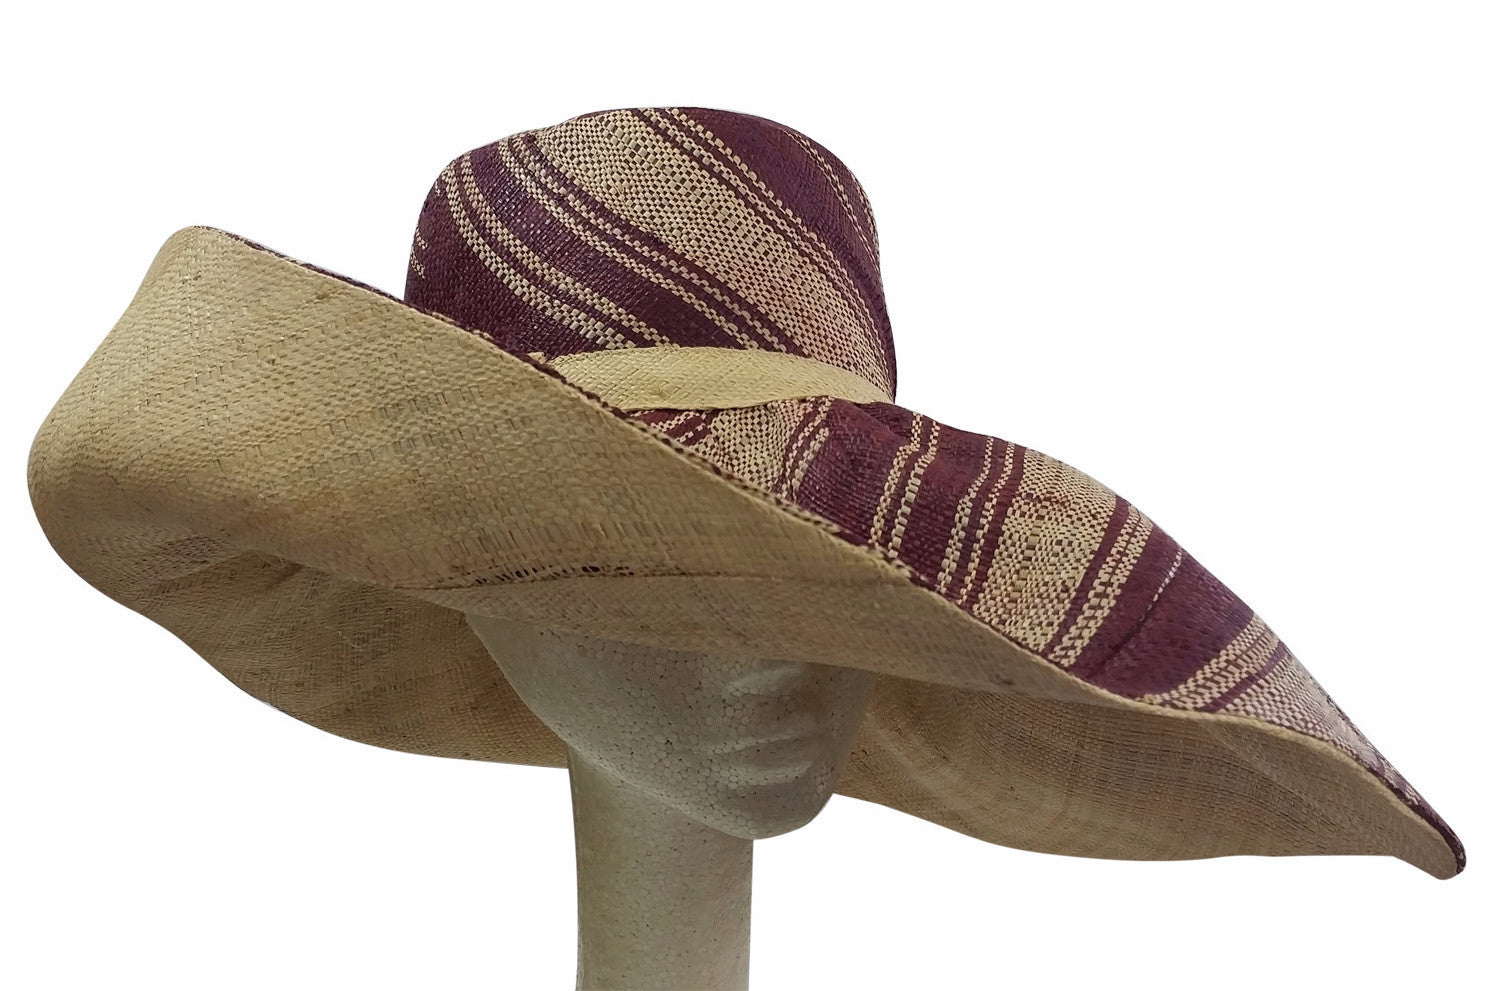 Desta: Hand Woven Multicolored Madagascar Big Brim Raffia Sun Hat